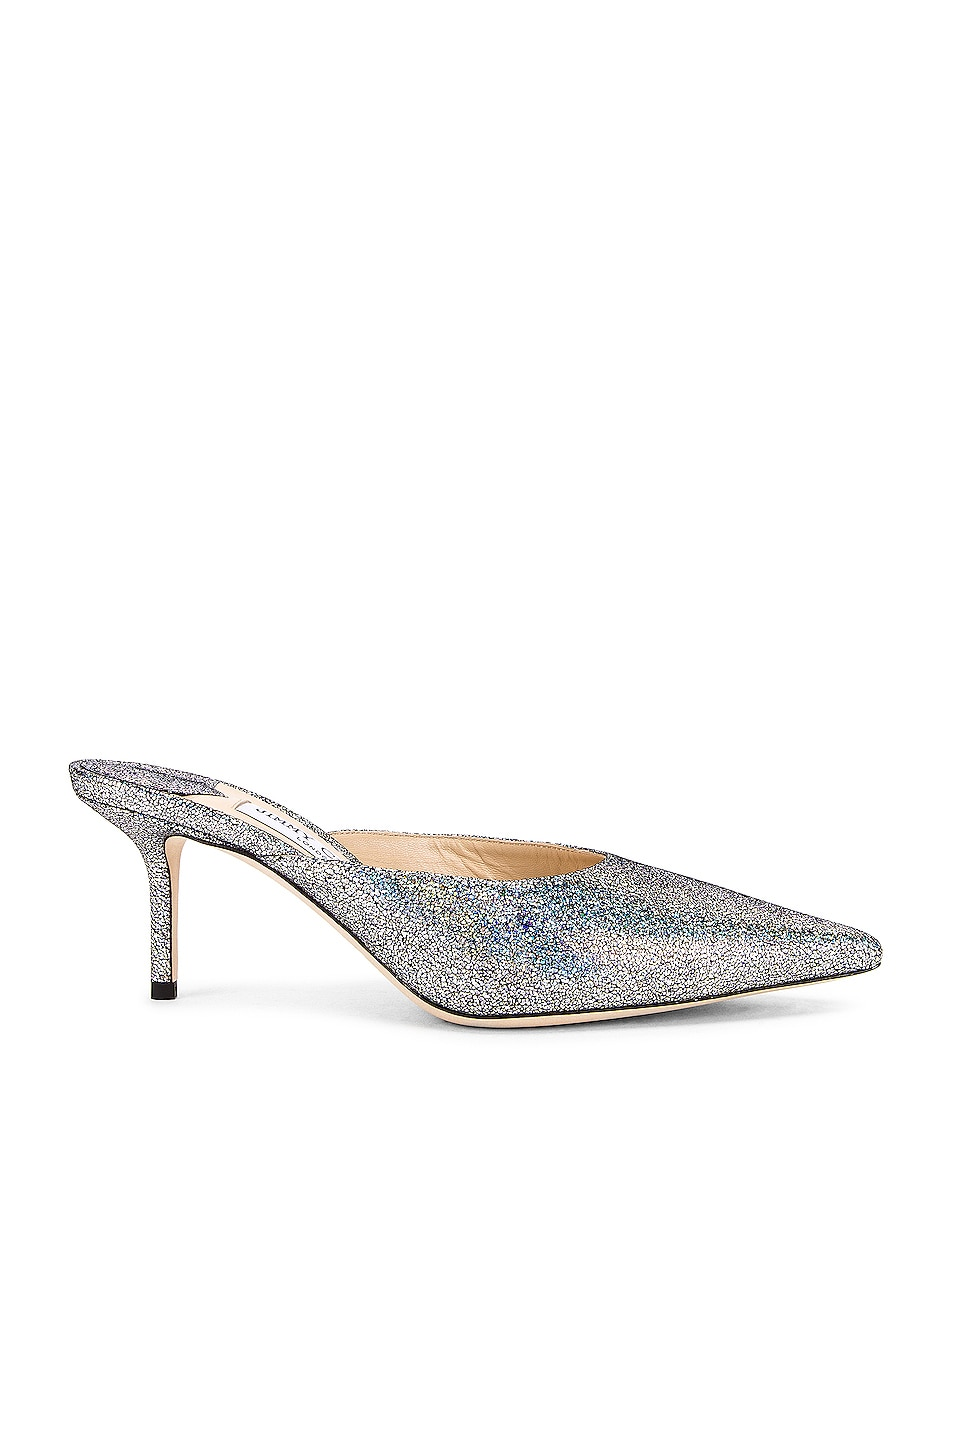 Image 1 of Jimmy Choo Rav 65 Hologram Heel in Multi